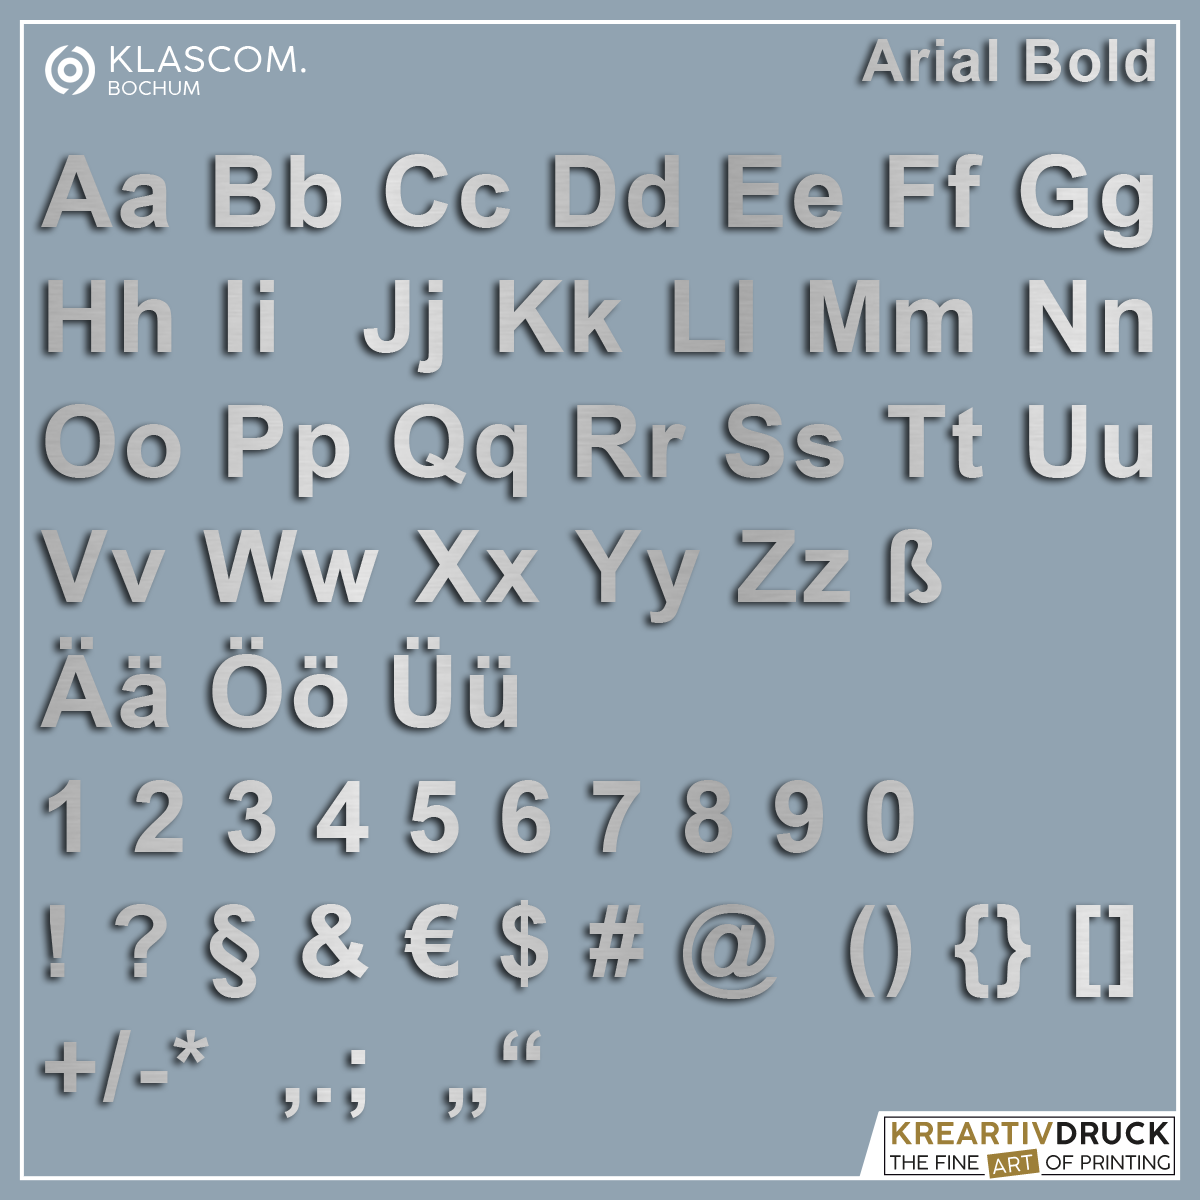 arial-bold-butlerfinish-sil